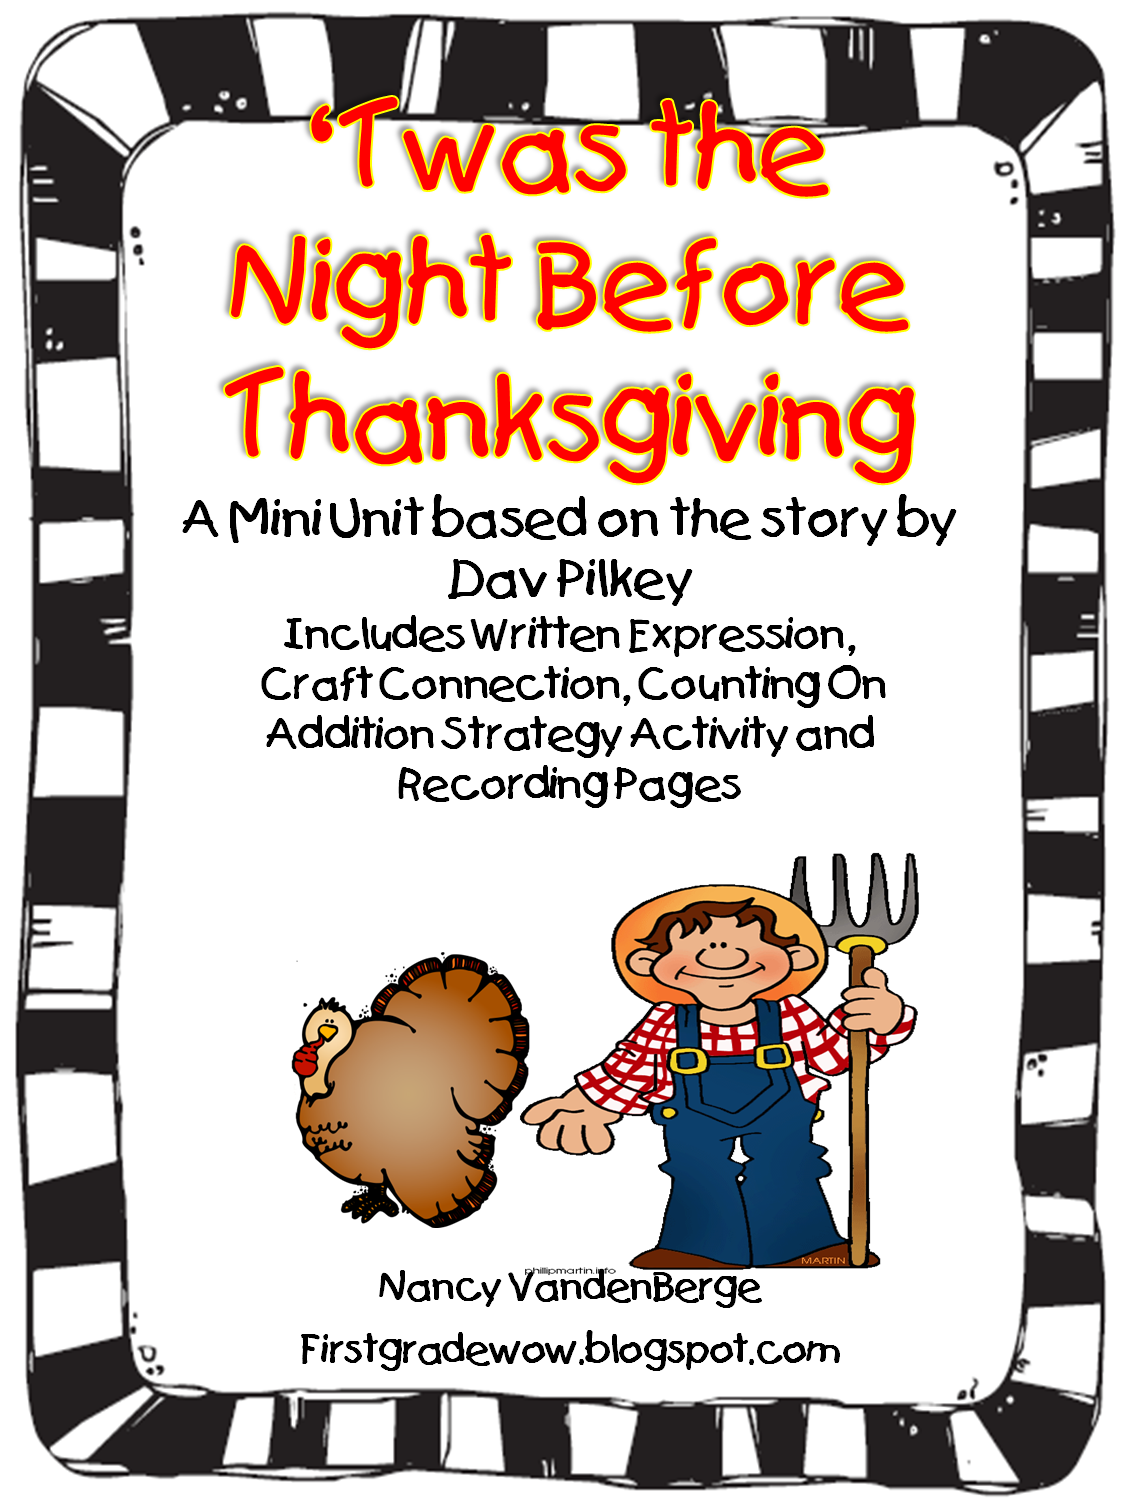 First Grade Wow Twas The Night Before Thanksgiving